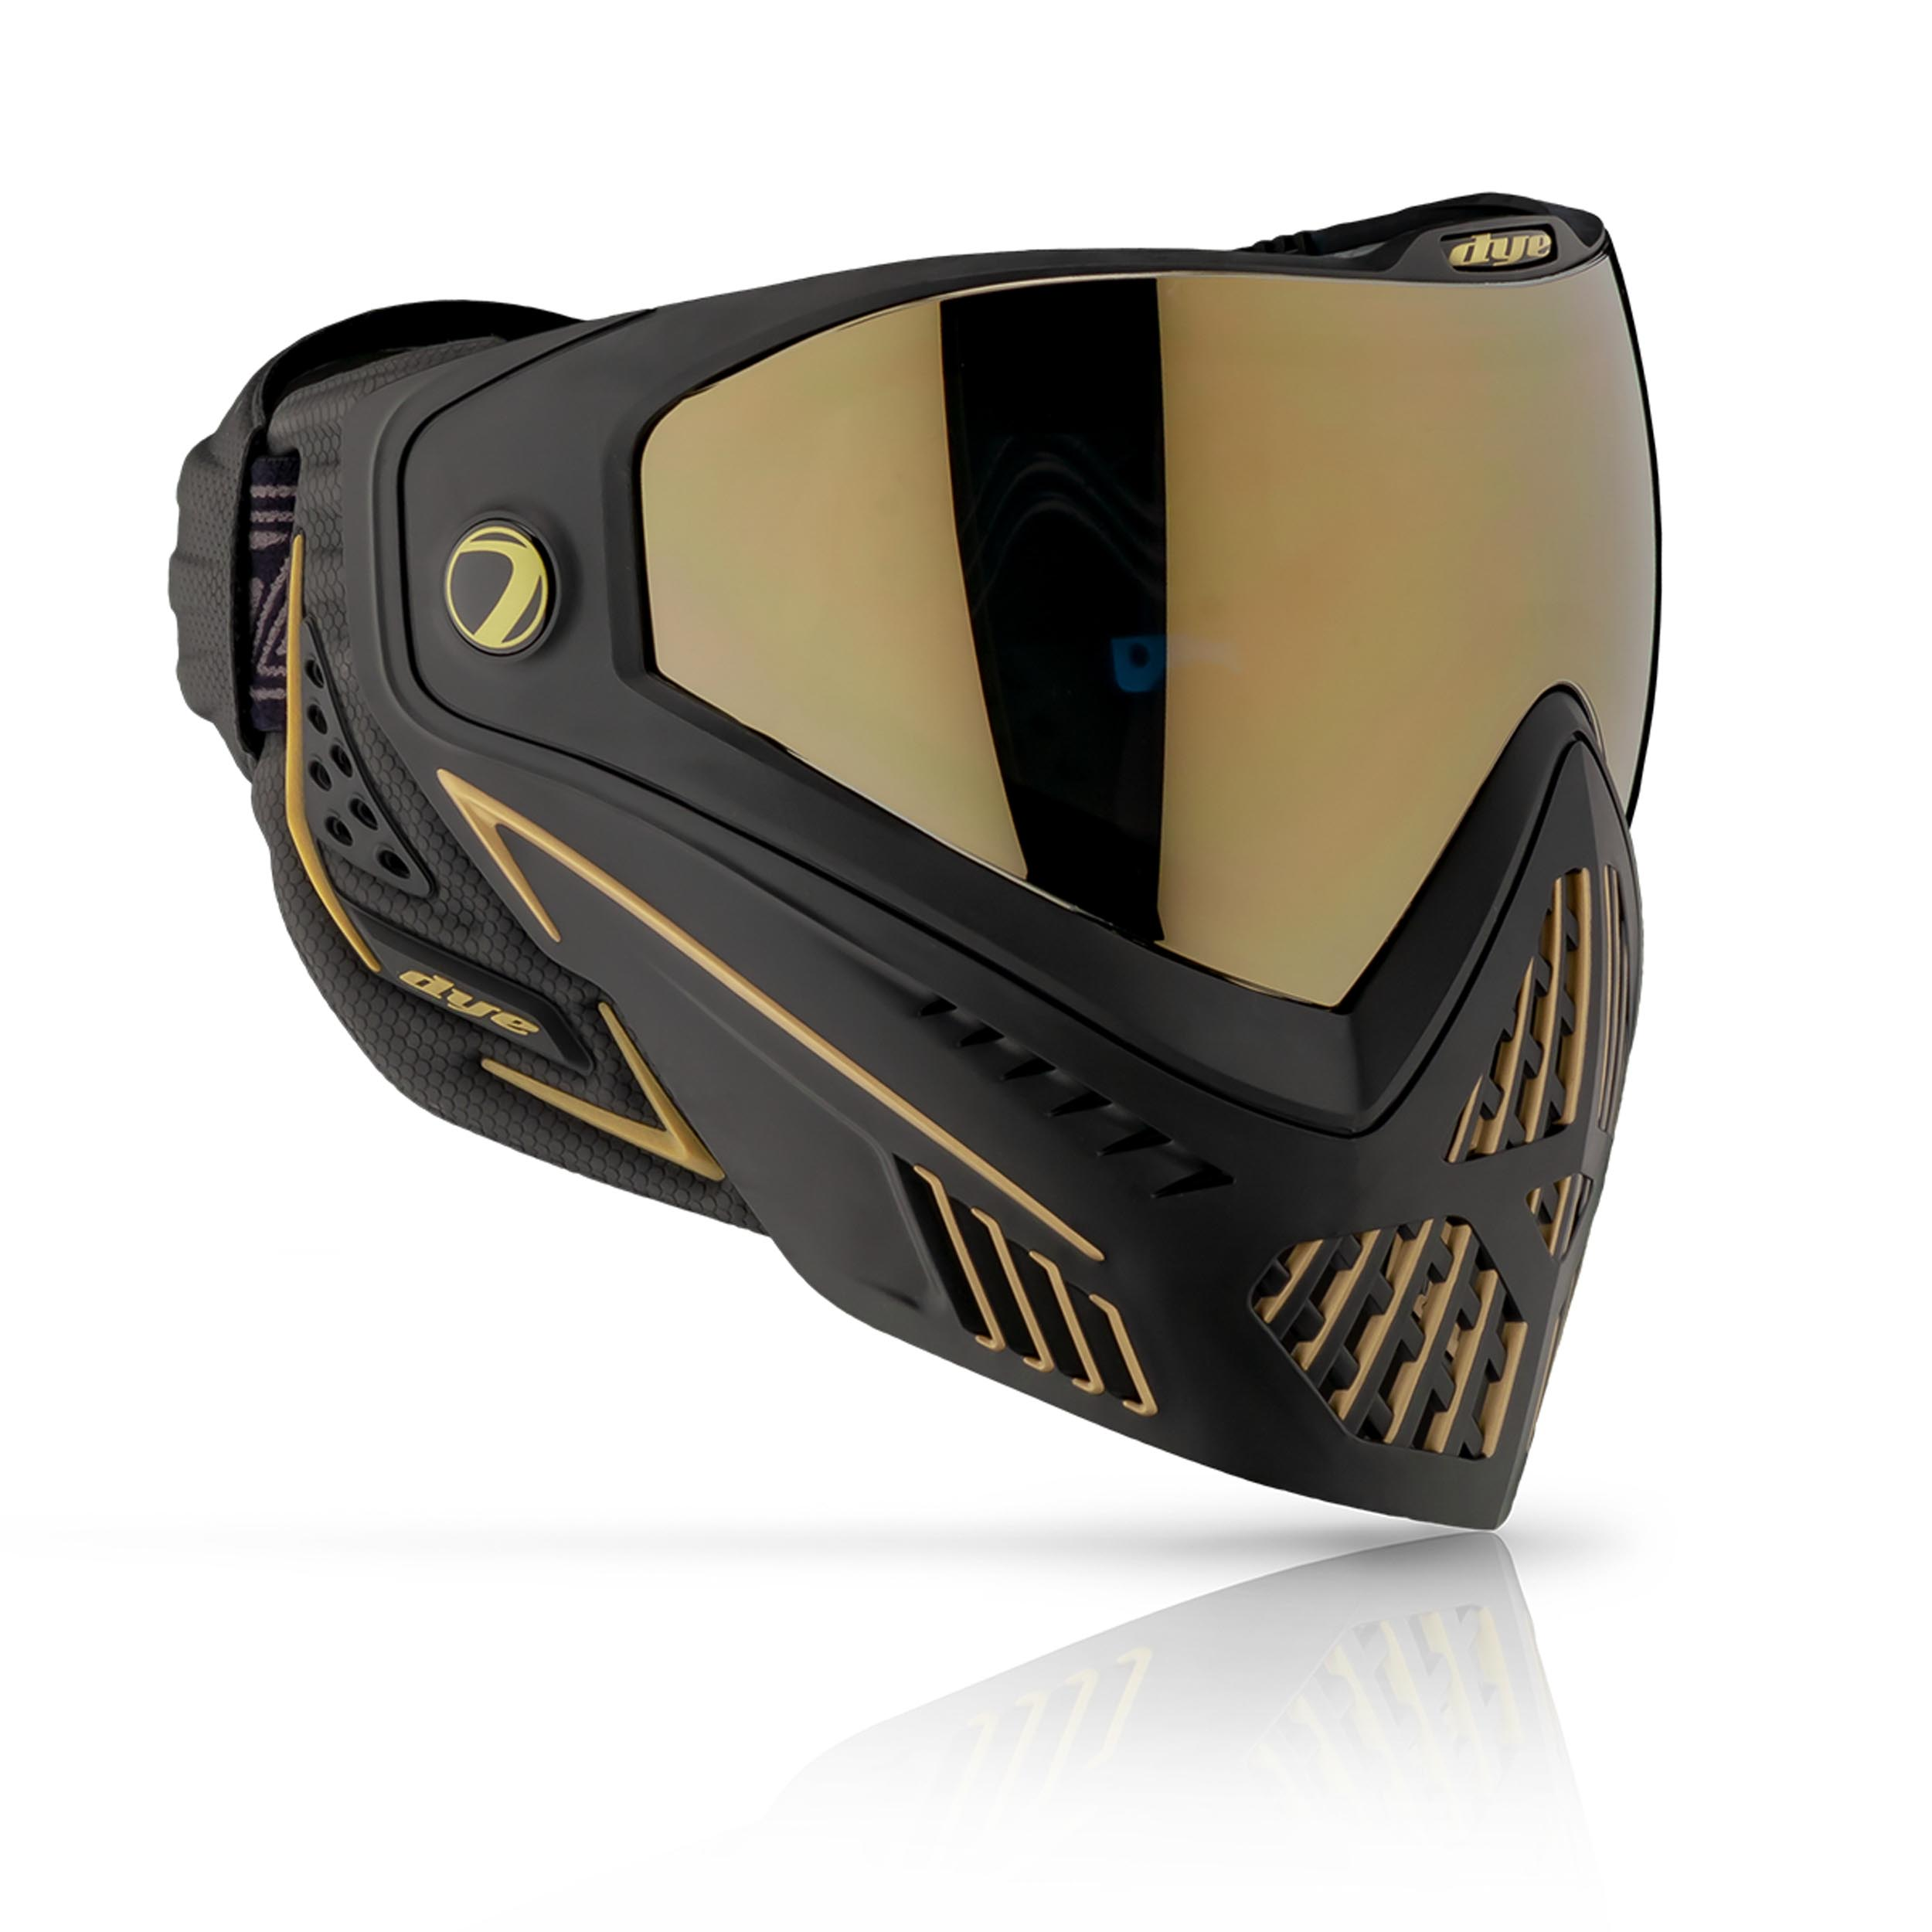 MAS470 Dye I5 thermal goggle Onyx Black Gold 2.0 - MAS473